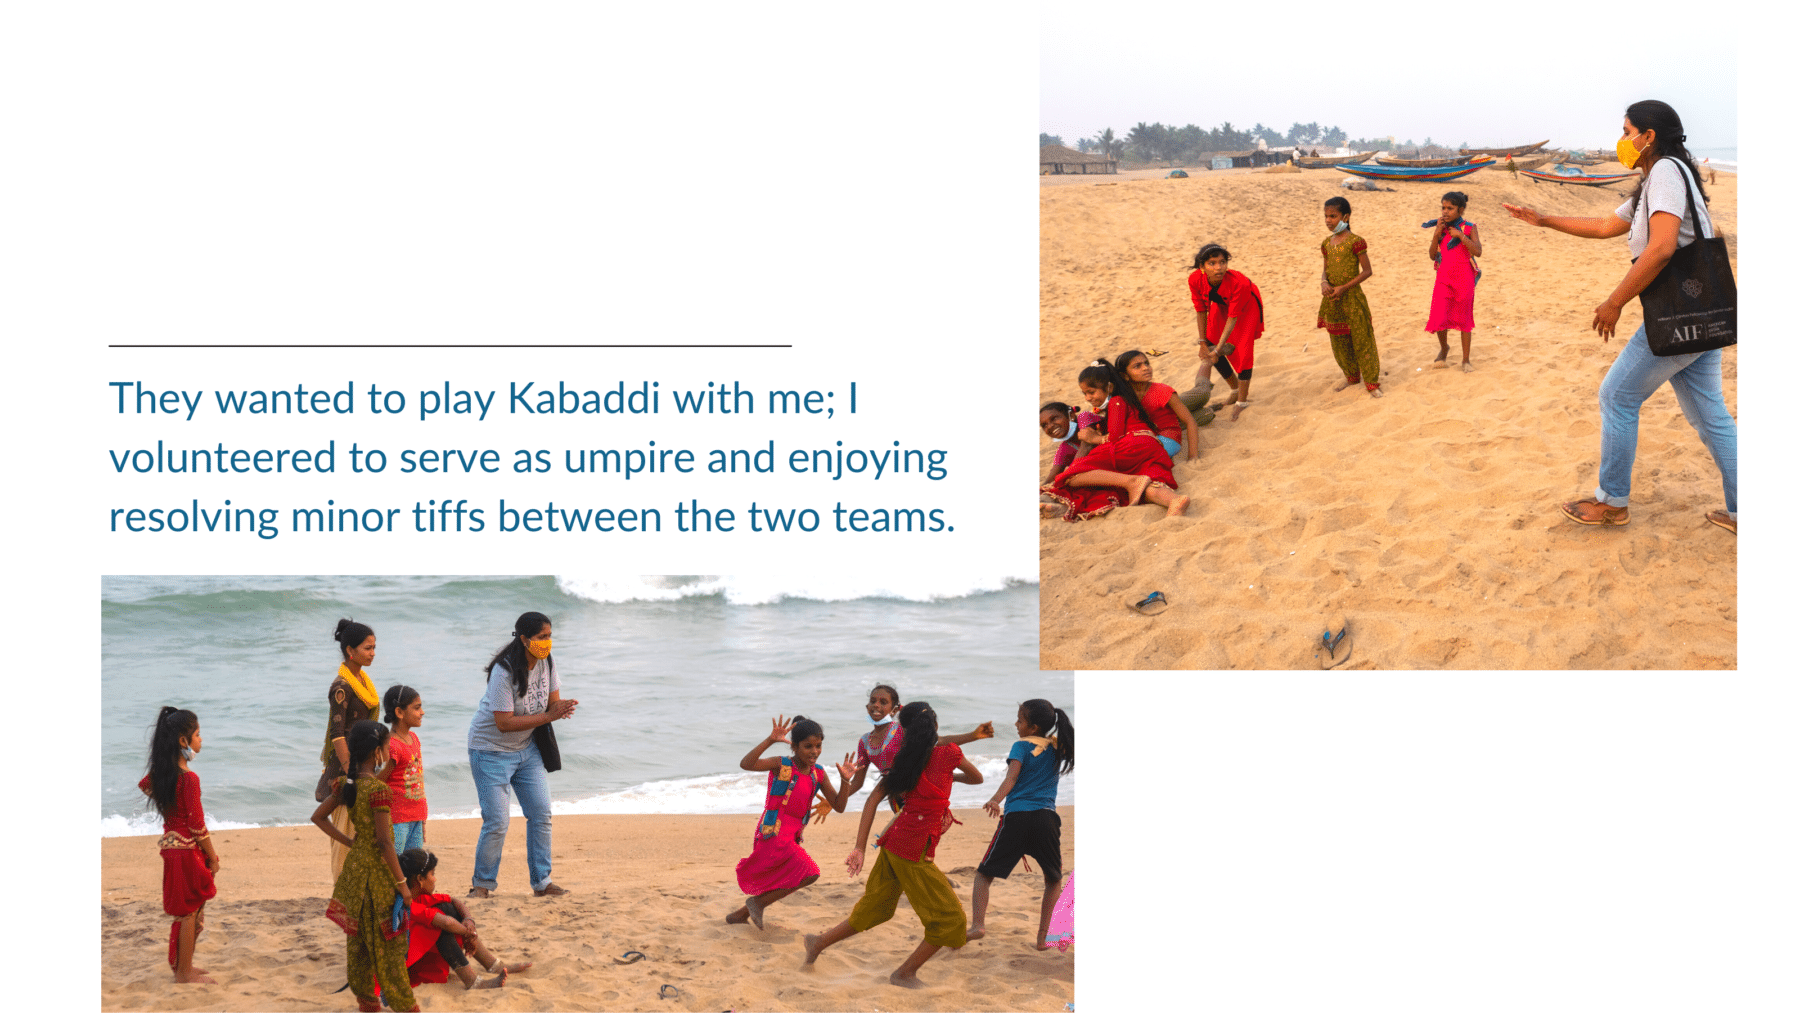 They wanted to play Kabbadi with me; I volunteered to serve as umpire and enjoying resolving minor tiffs between the two teams.